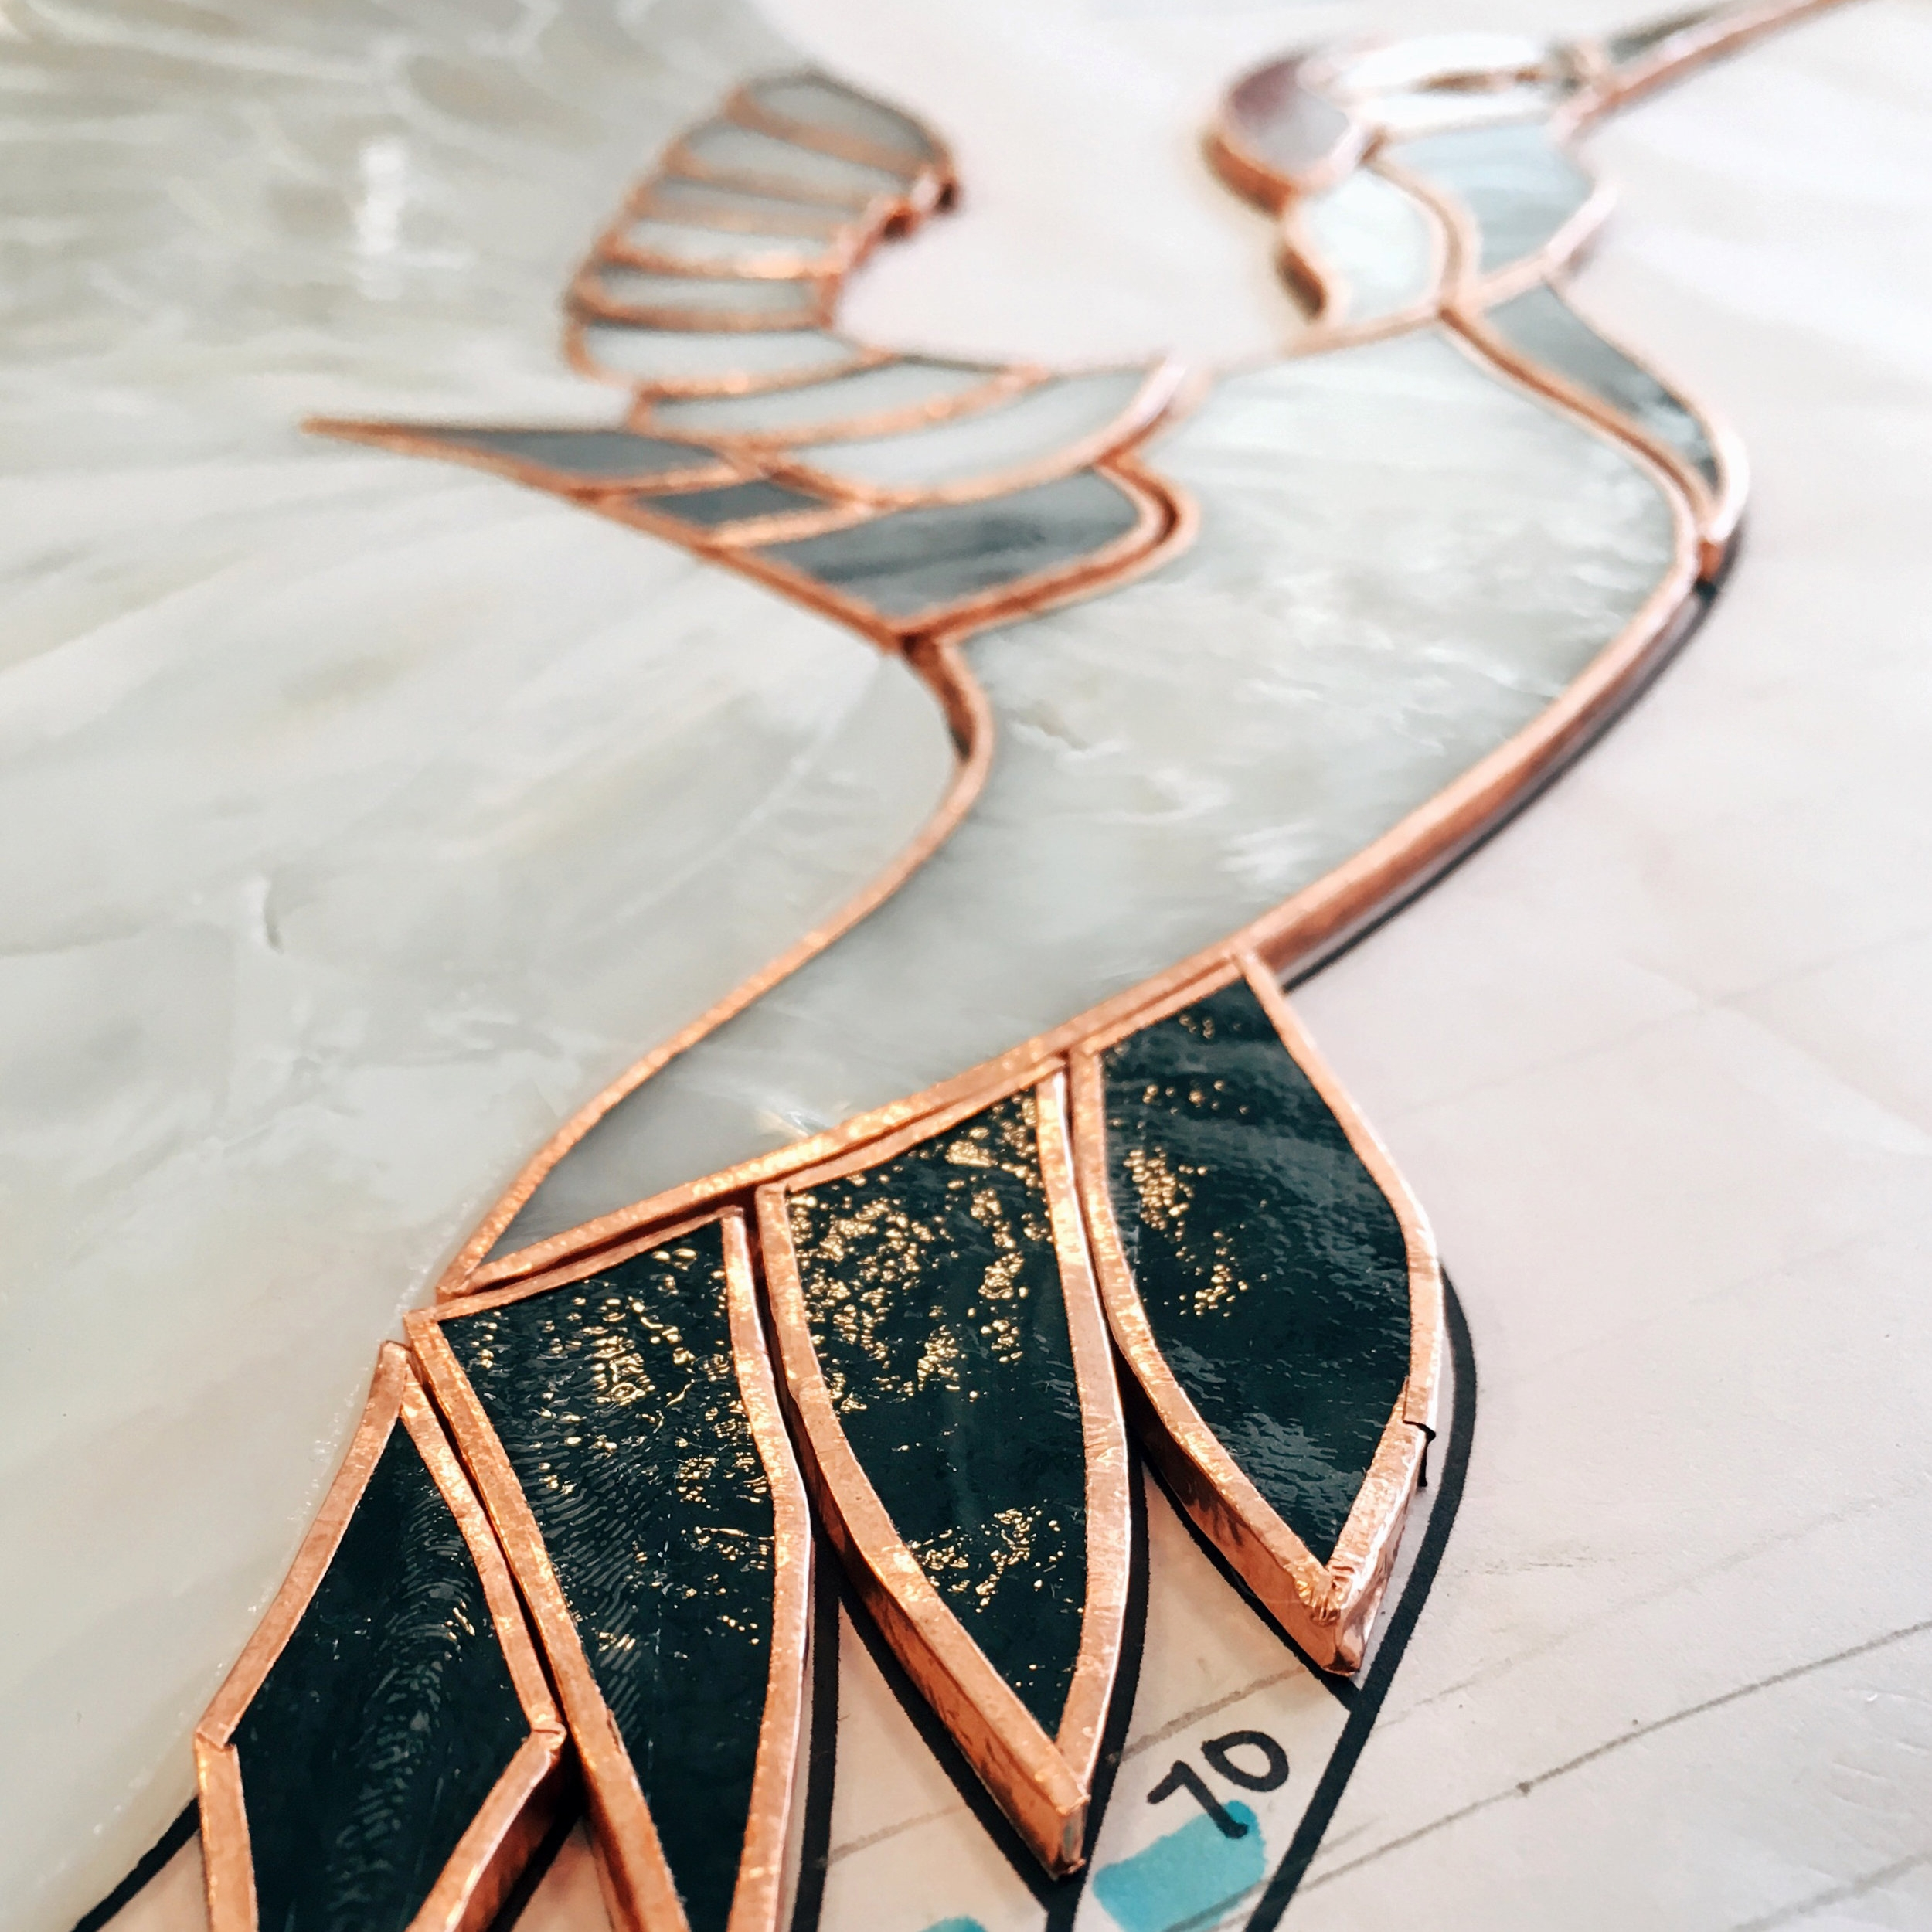 copper foil stained glass studio fabrication leaded glass stained glass window palo alto atherton california san francisco san jose legacy glass.jpg